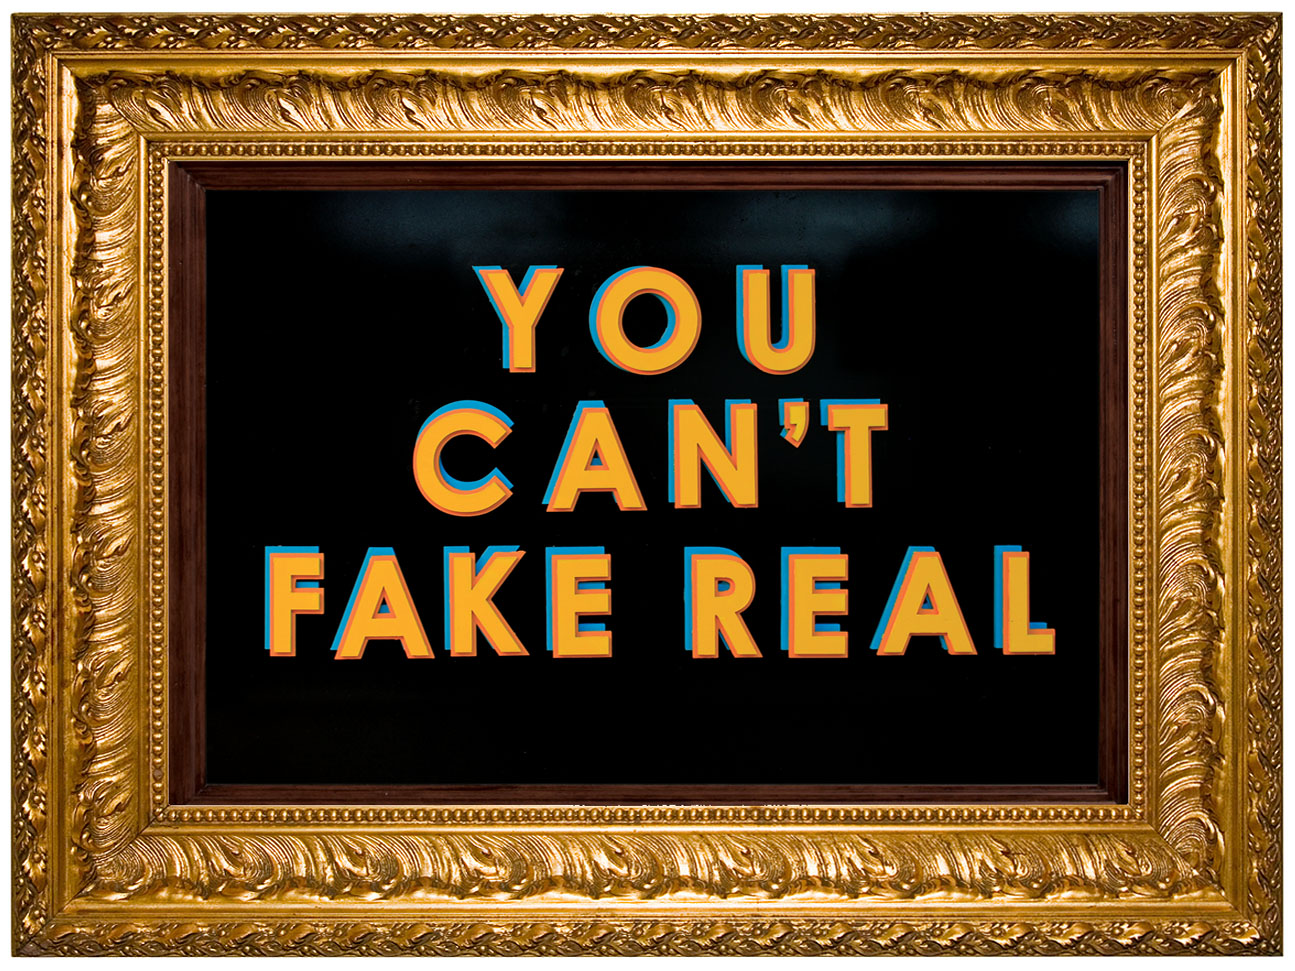 You can't fake real.jpg